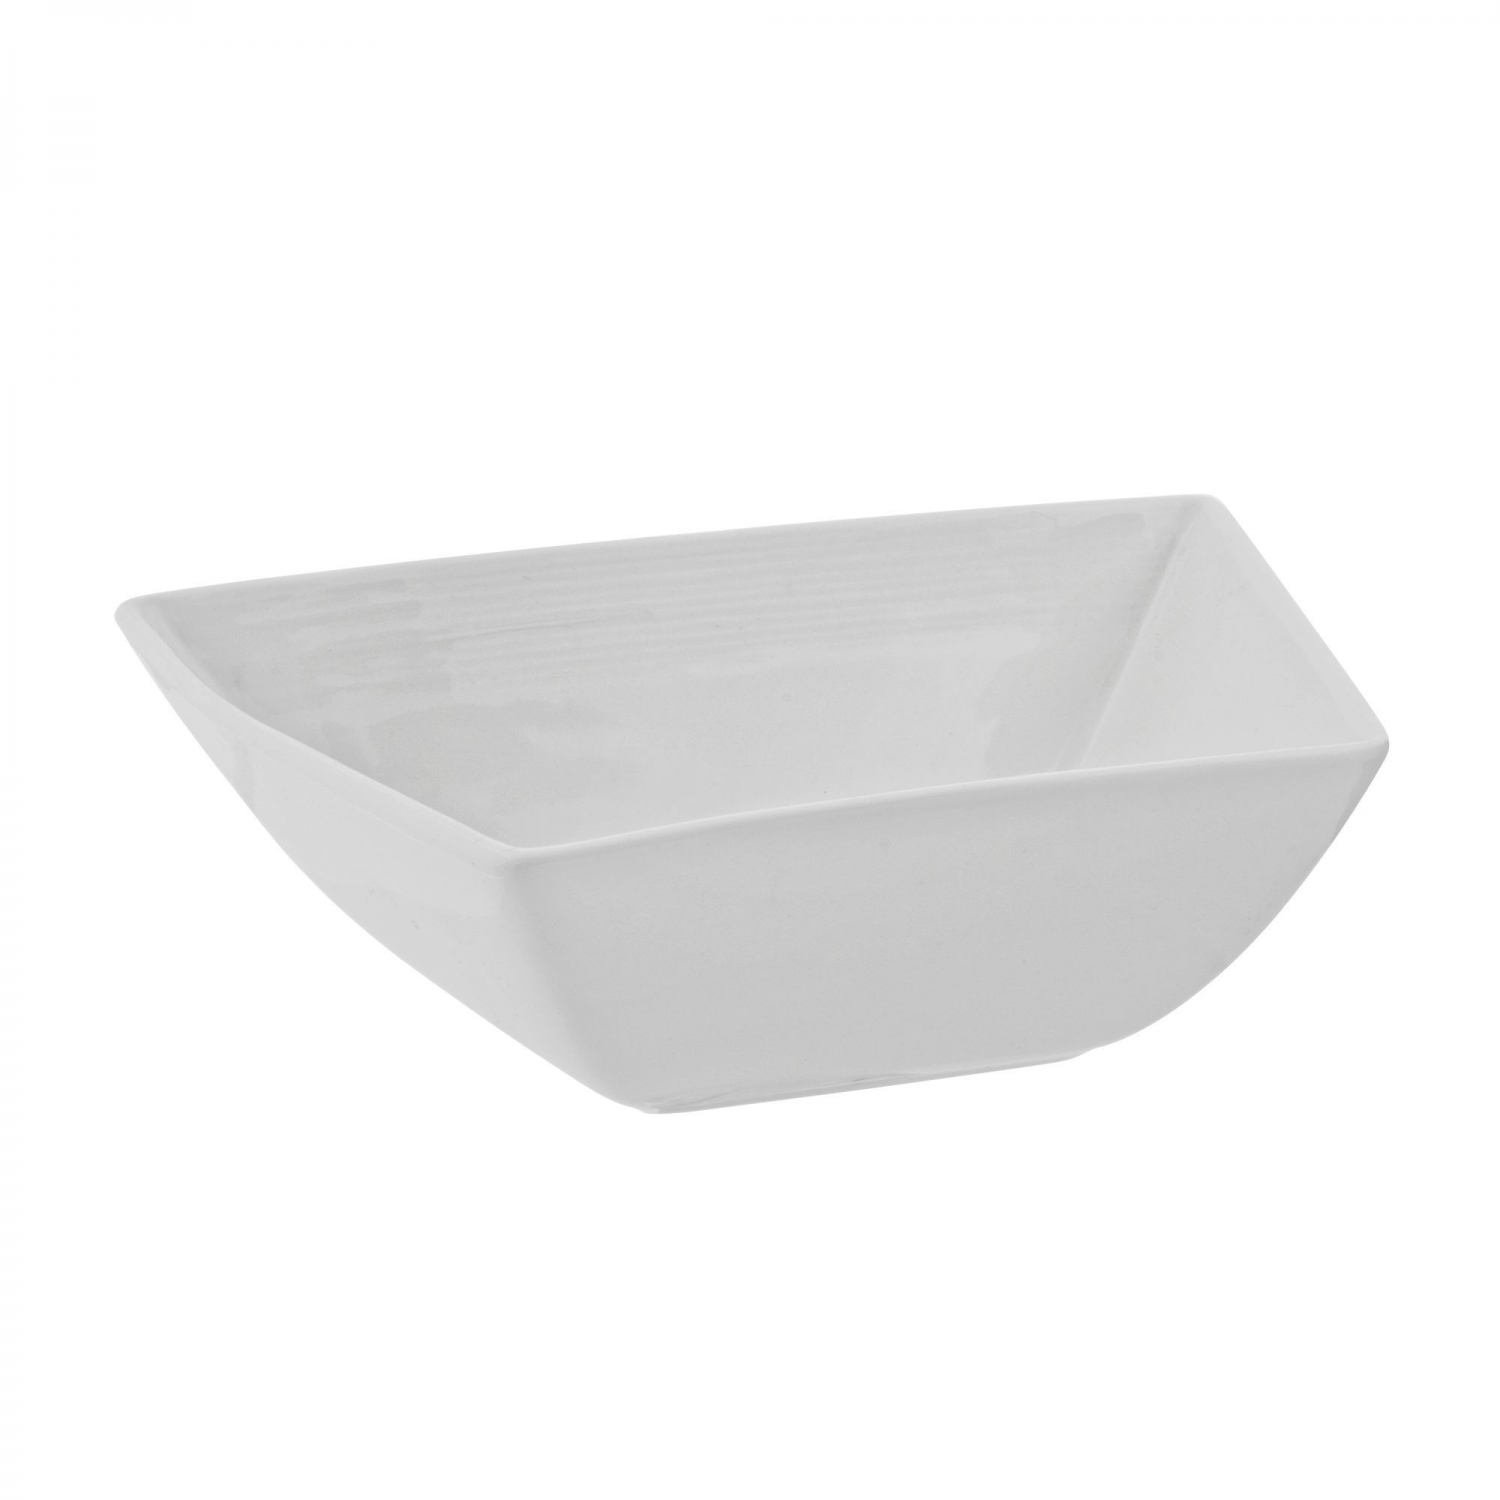 10 Strawberry Street WTR-5ZENBWL 24 oz. Whittier Zen Trapezoid Cereal Bowl - 24 pcs